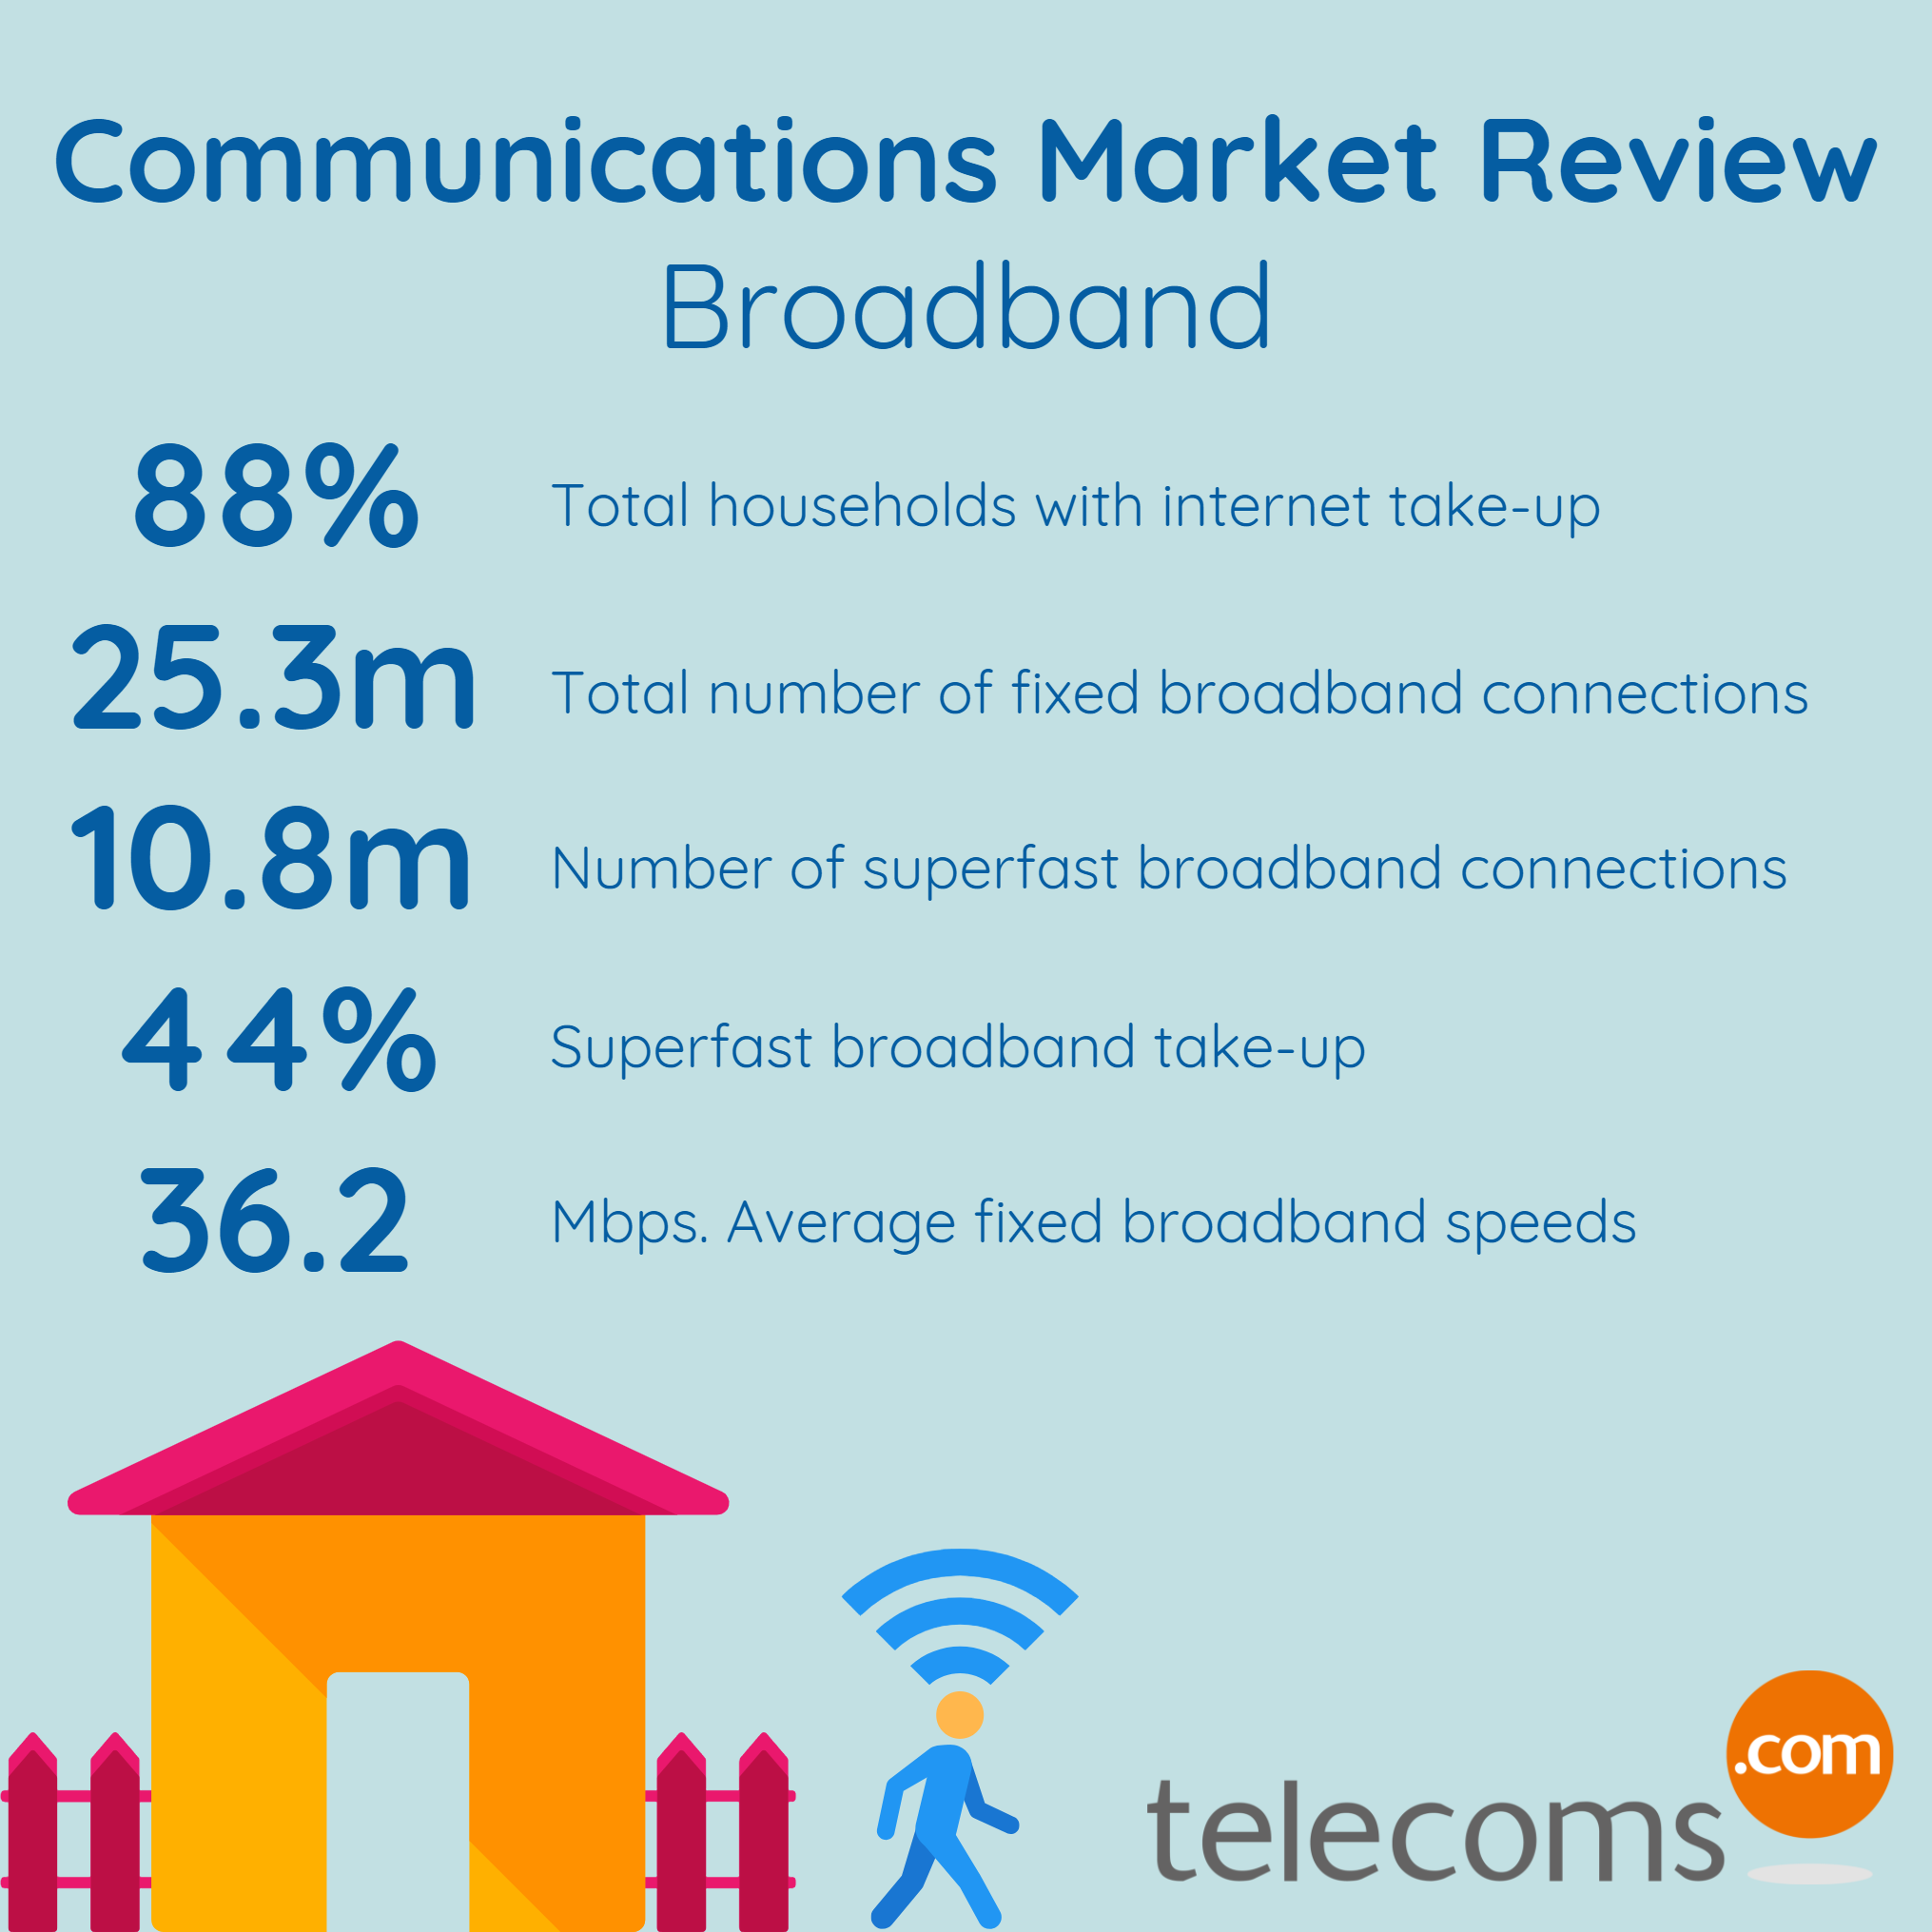 Broadband Market Review